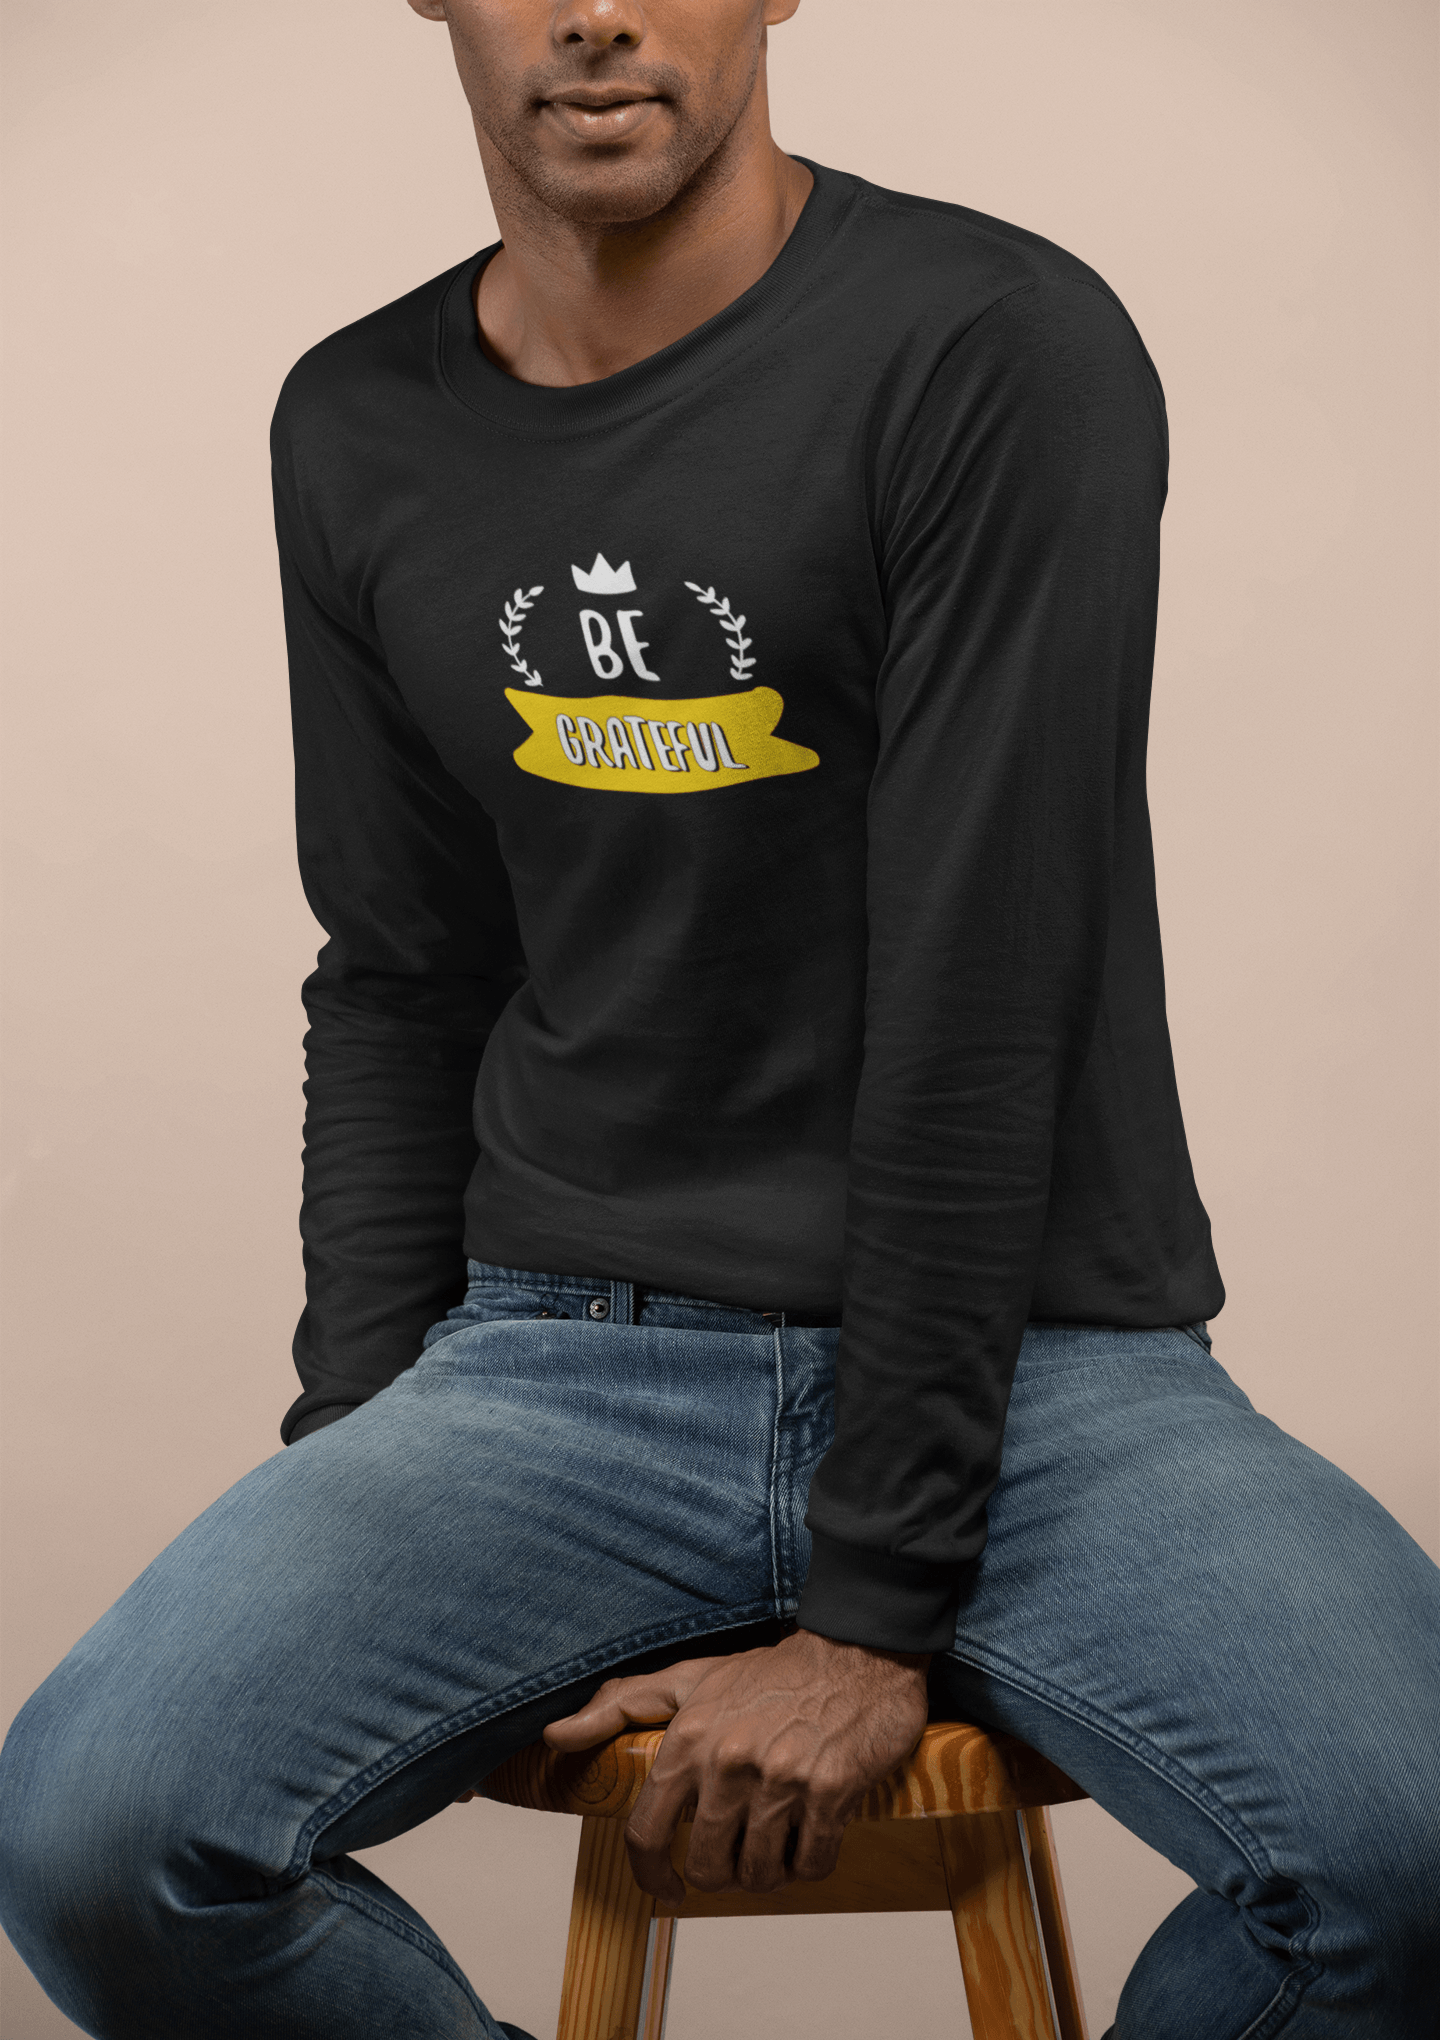 mockup-of-a-man-wearing-a-long-sleeve-tee-sitting-on-a-stool-23324 (18)